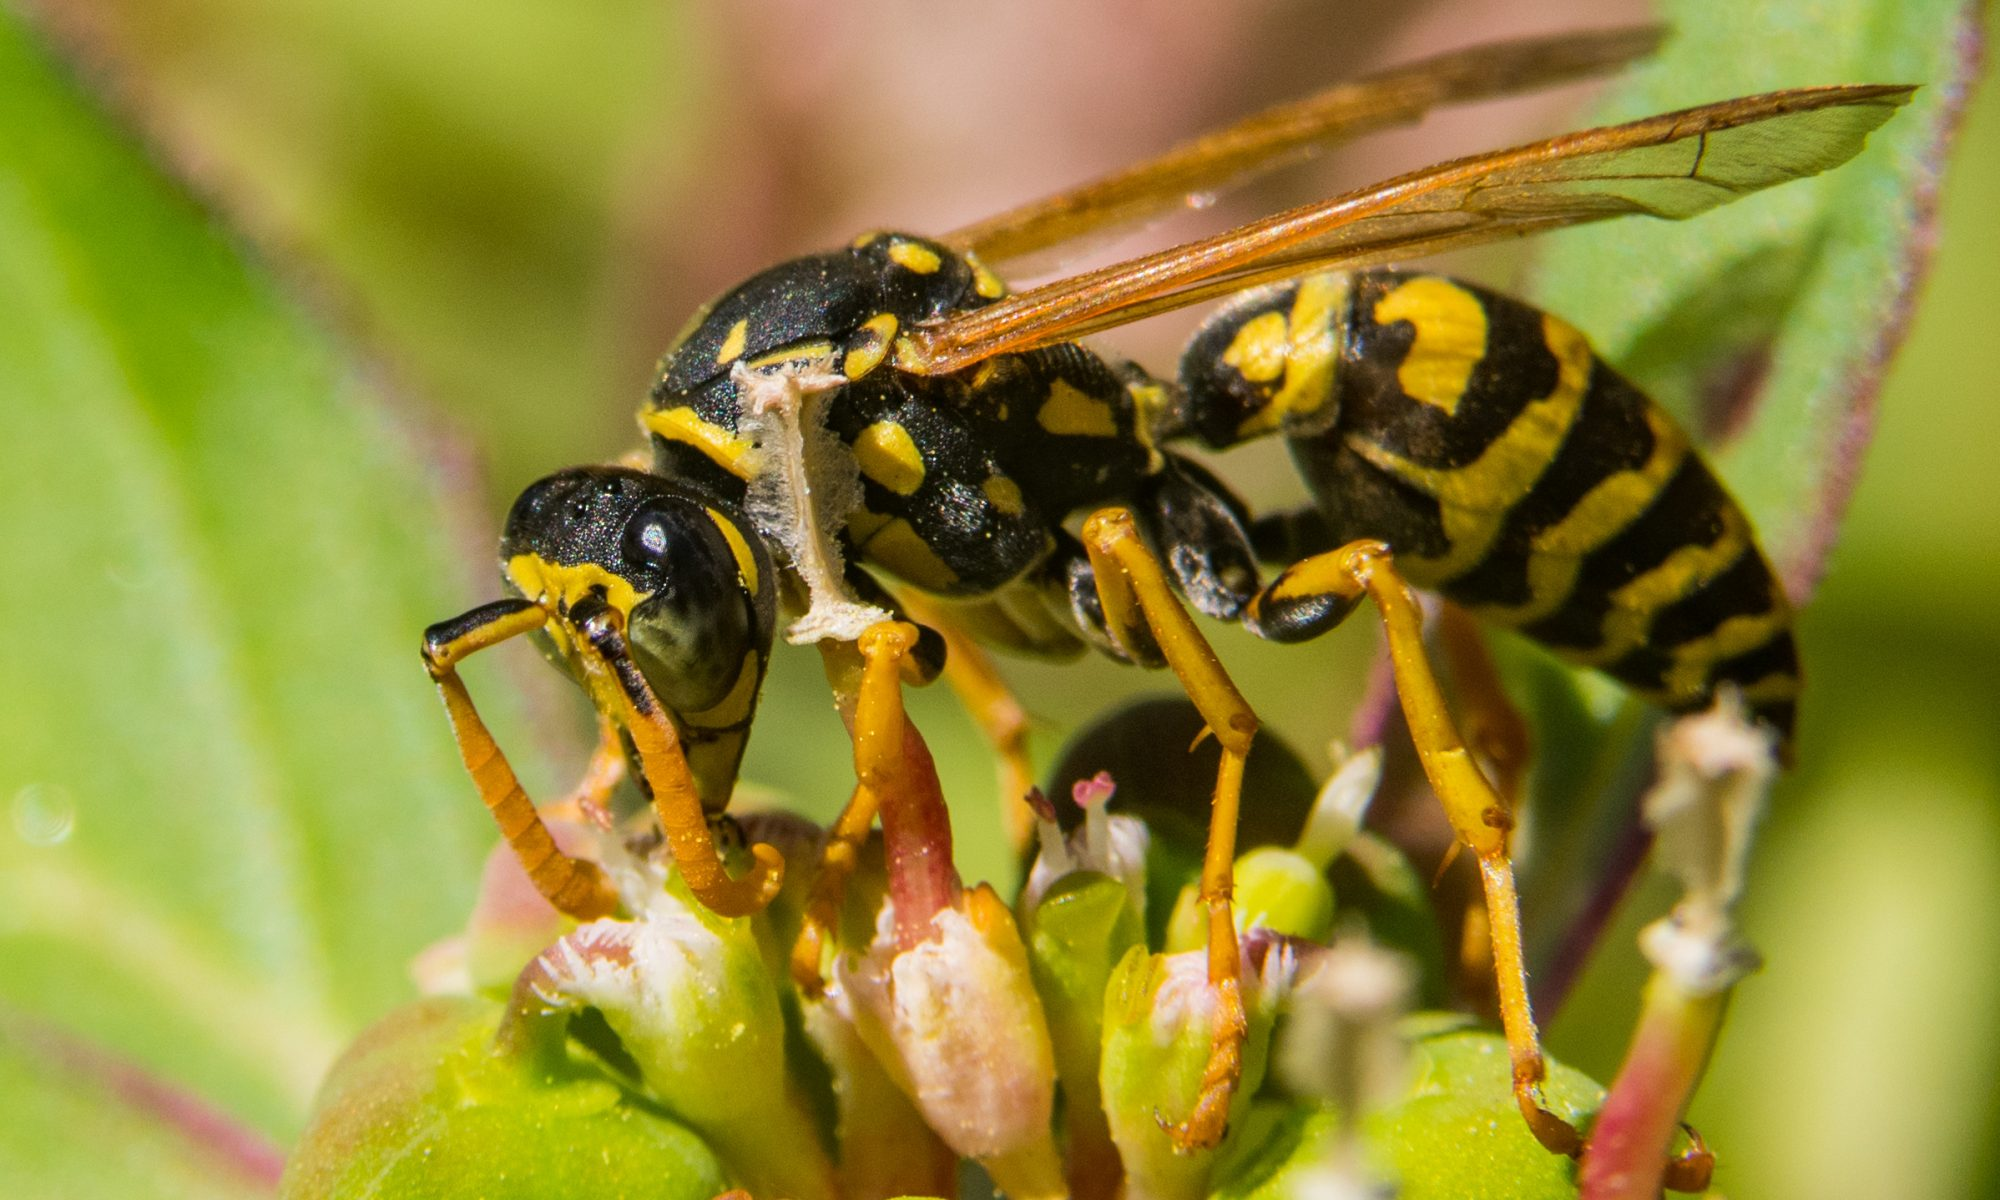 How long do yellow jackets live without food